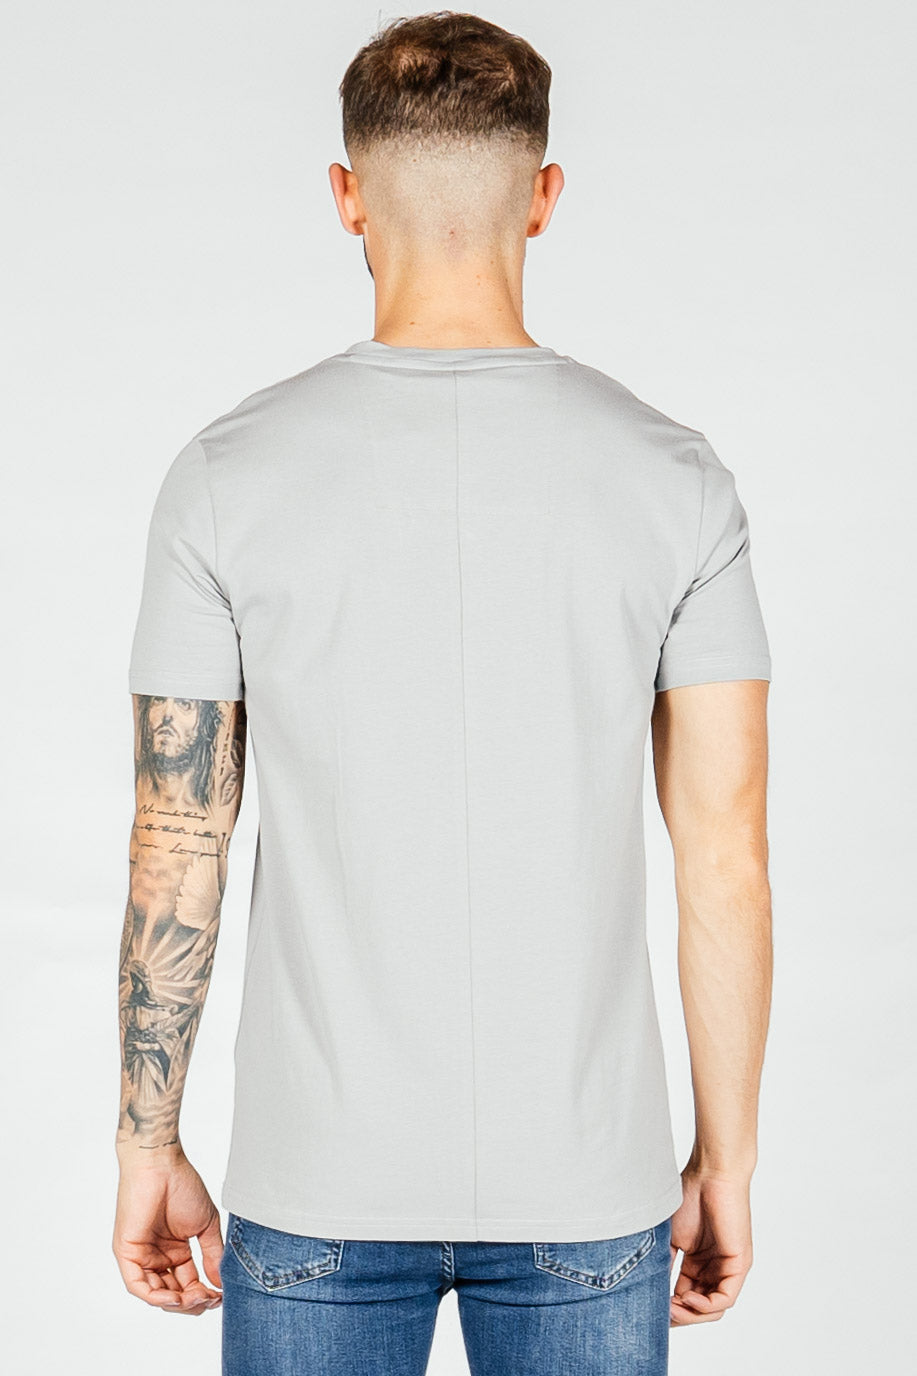 Men's Medal T-Shirt in Grey